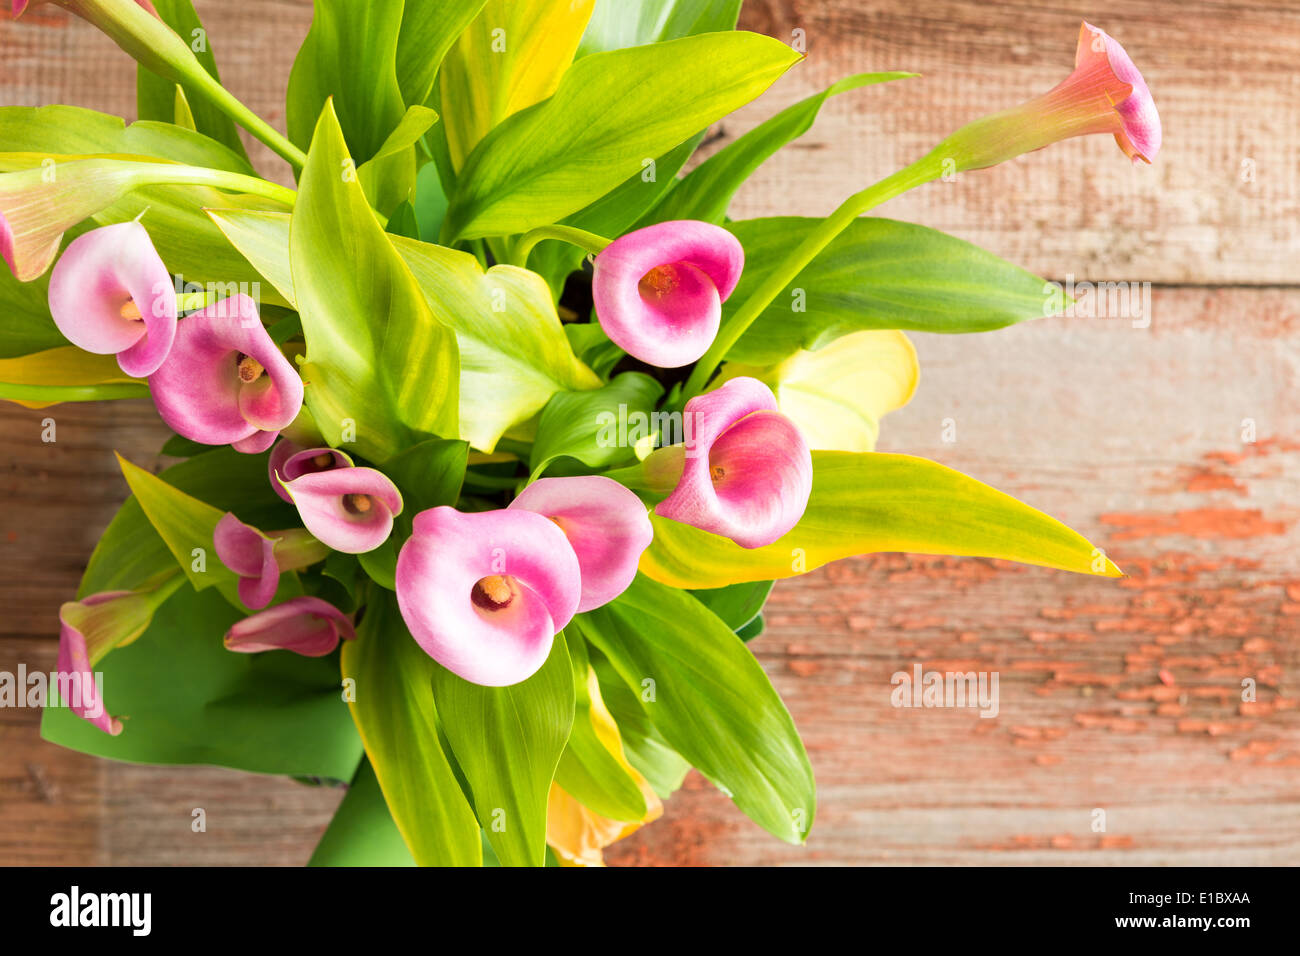 Calla Lily Flowers On Rustic Stock Photos Calla Lily Flowers On